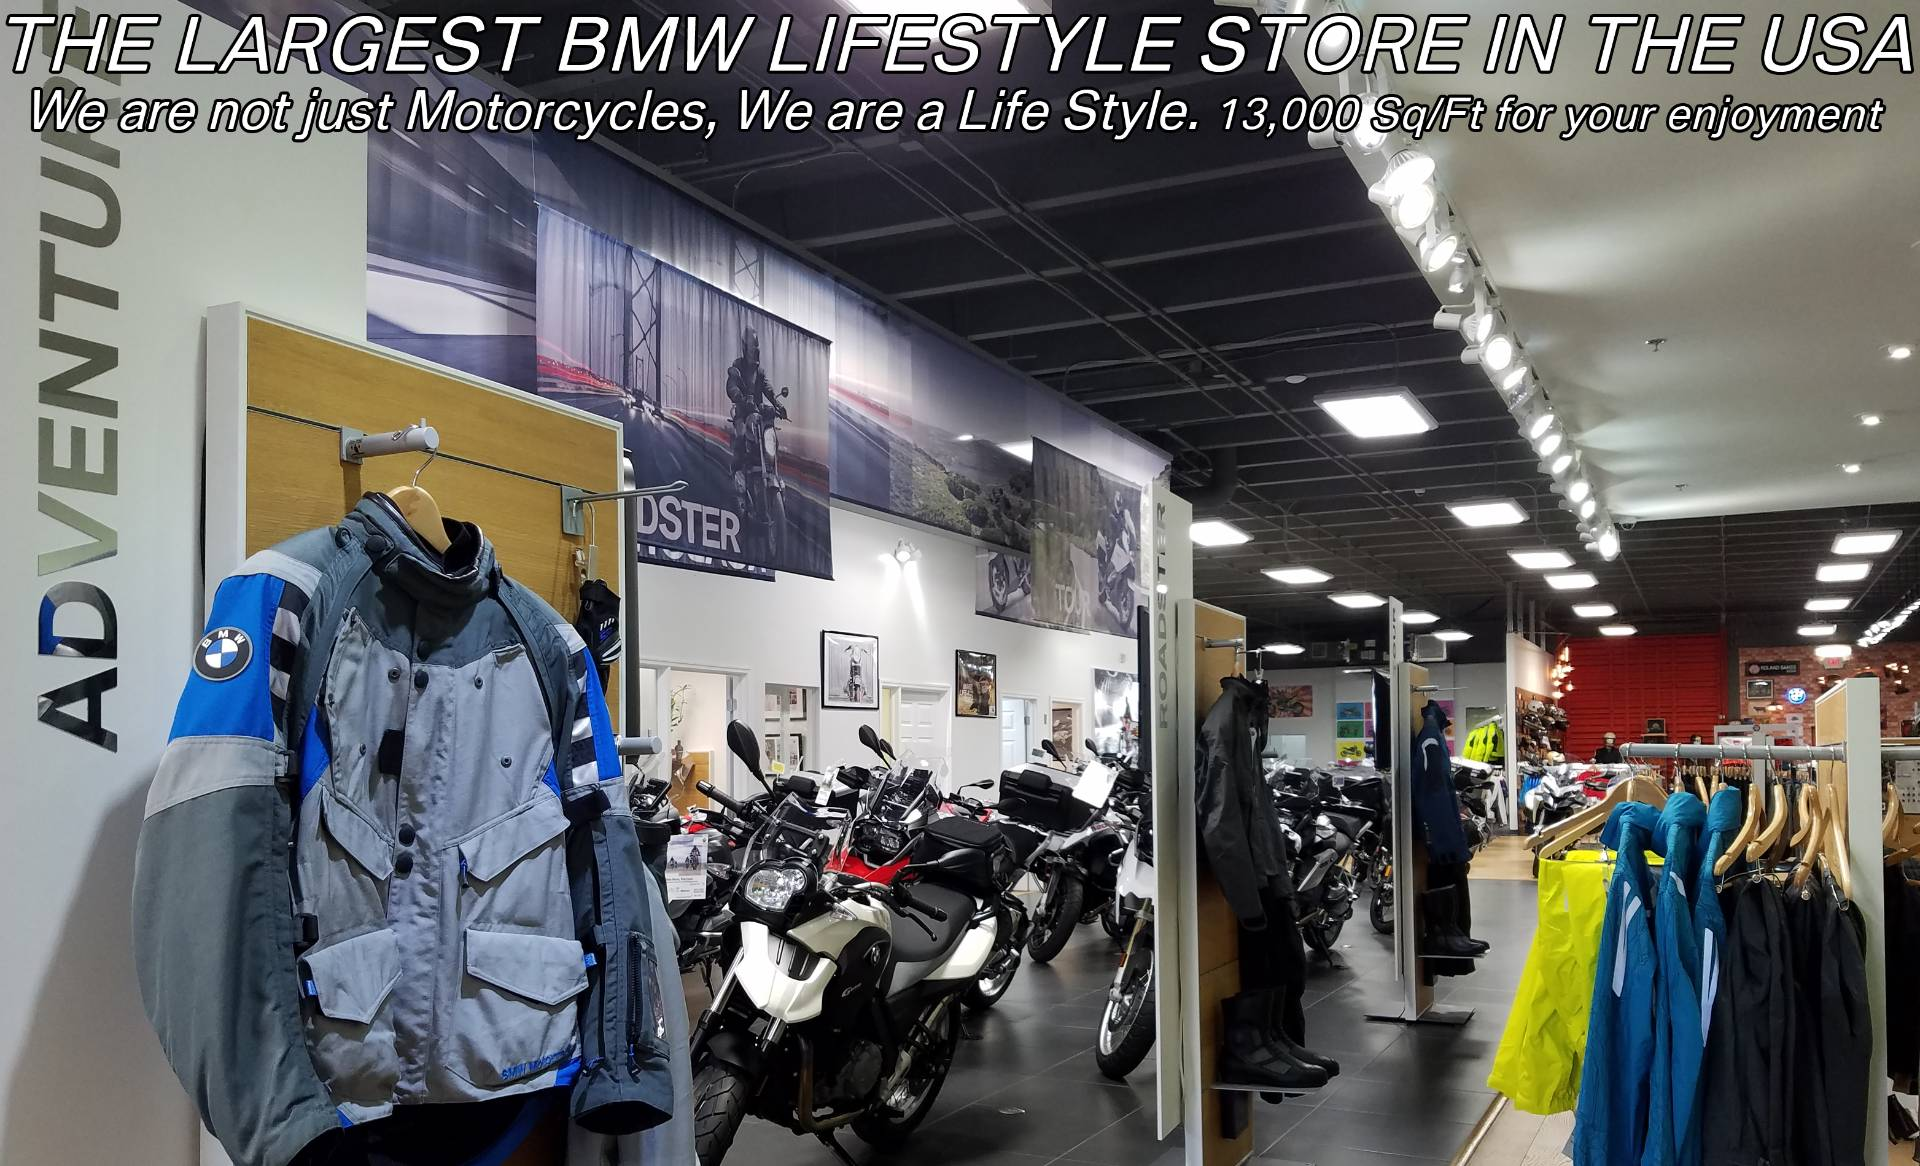 New 2019 BMW R nine T Scrambler for sale, BMW Scrambler for sale, BMW Motorcycle Scrambler, Scrambler, BMW Motorcycles of Miami, Motorcycles of Miami, Motorcycles Miami, New Motorcycles, Used Motorcycles, pre-owned. #BMWMotorcyclesOfMiami #MotorcyclesOfMiami. - Photo 50